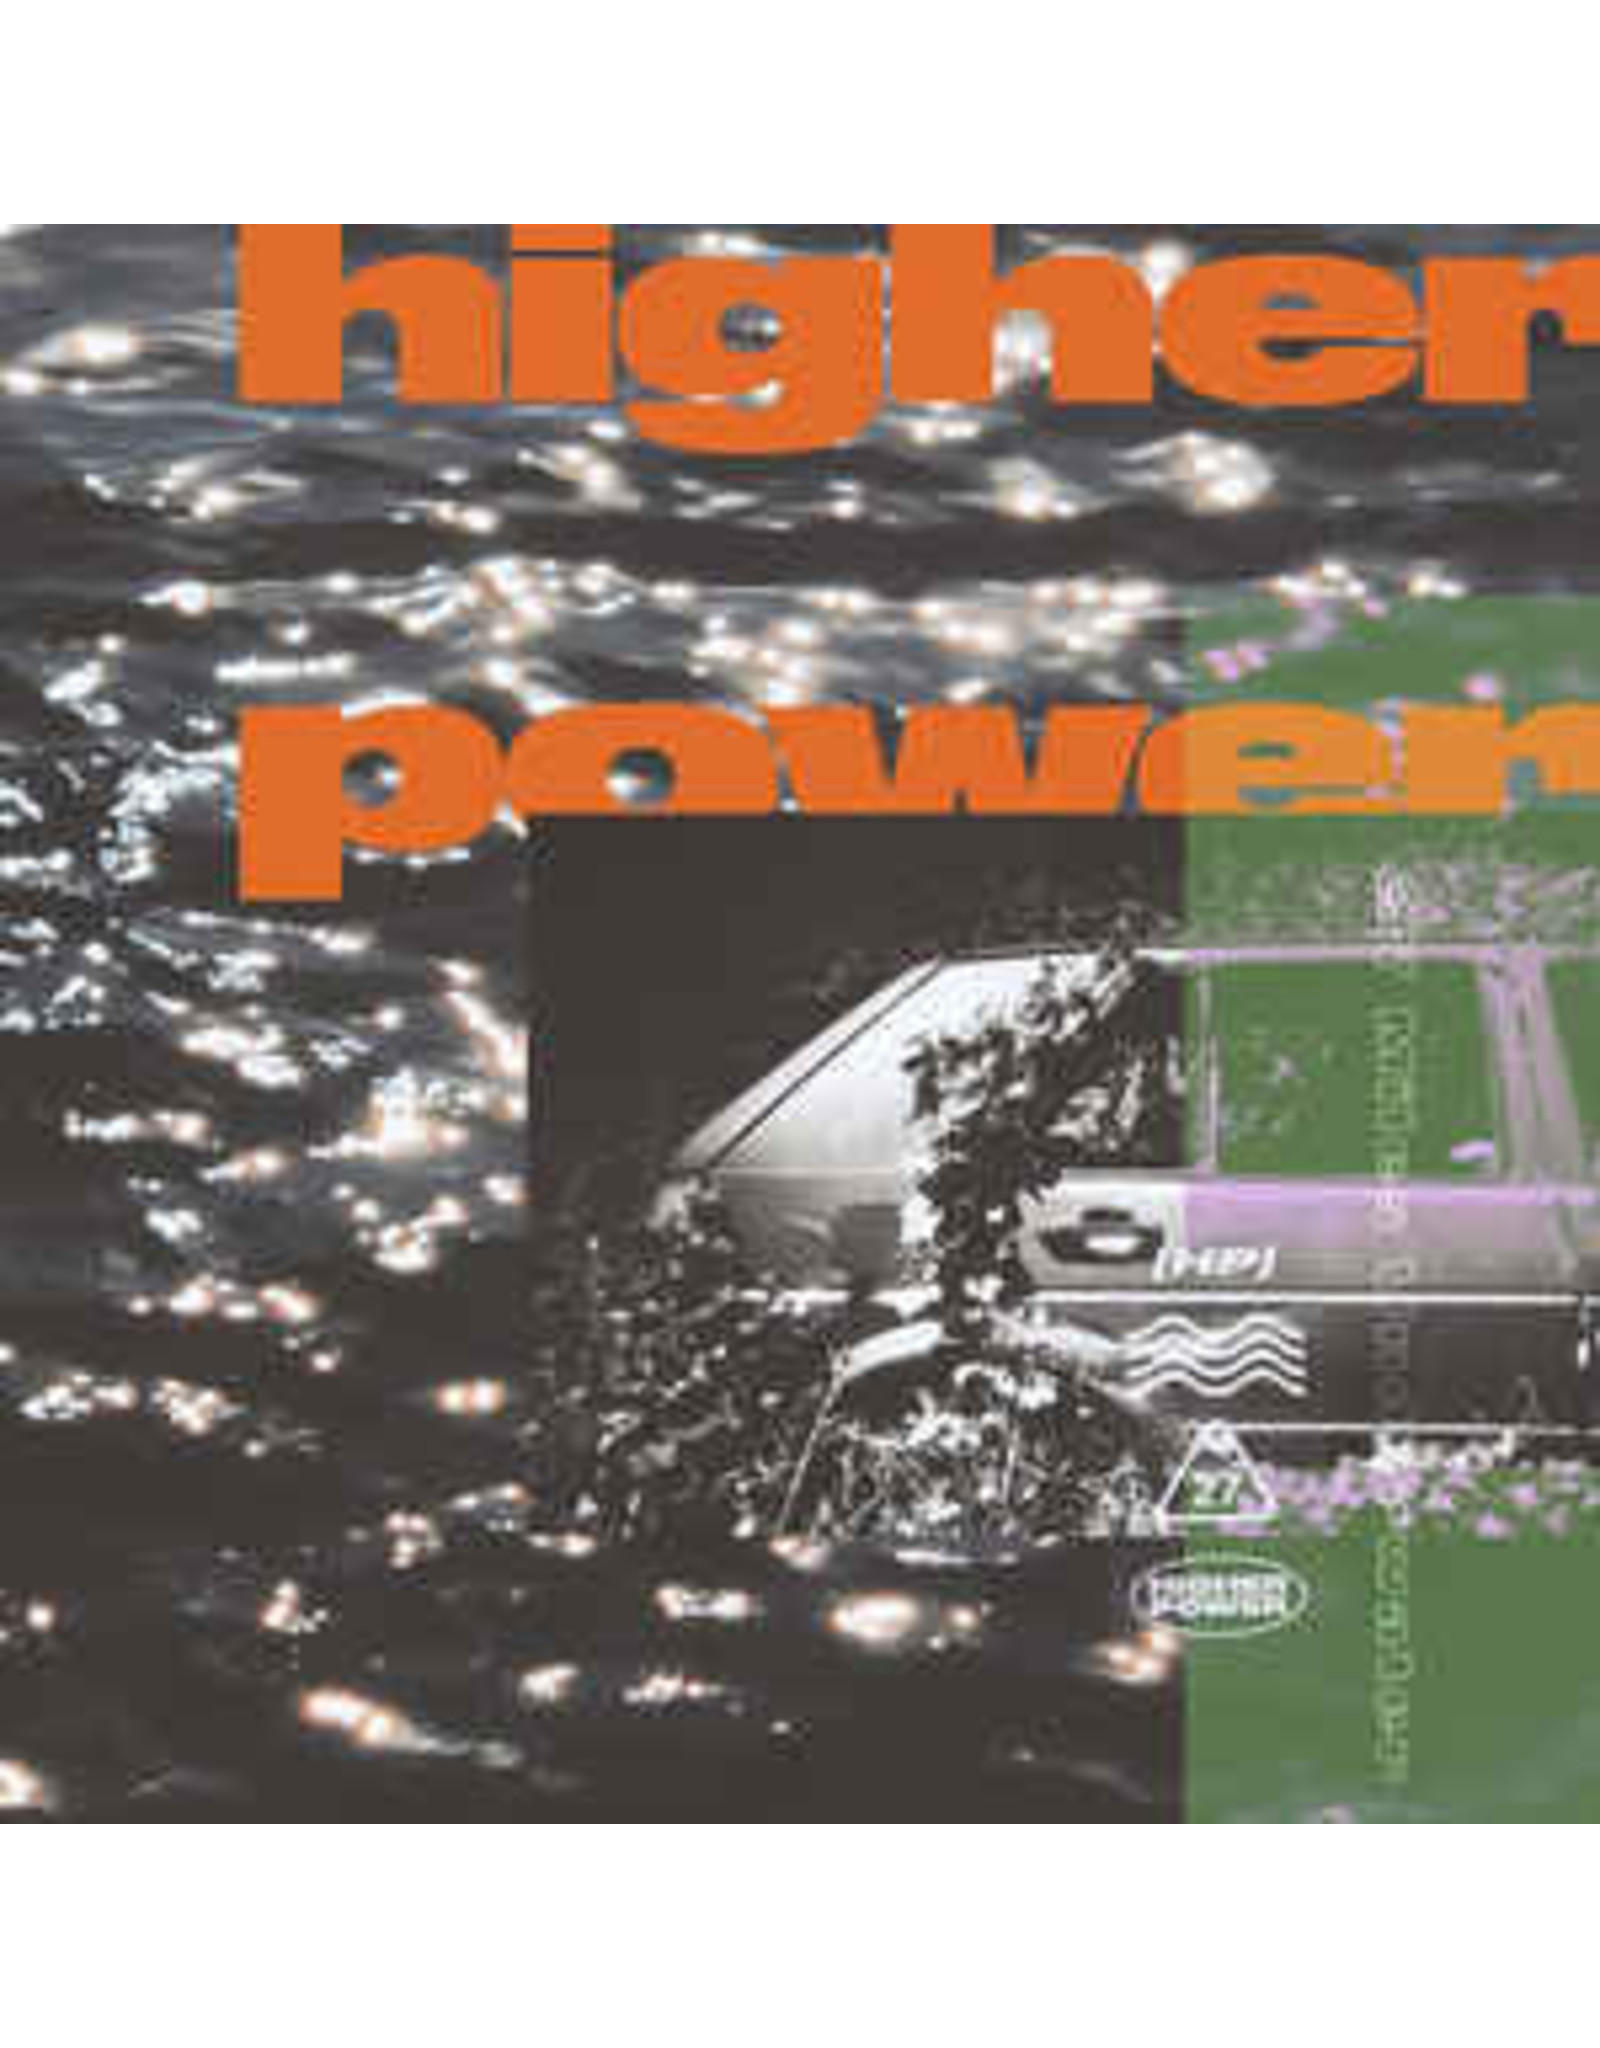 High Power - 27 Miles Underwater LP